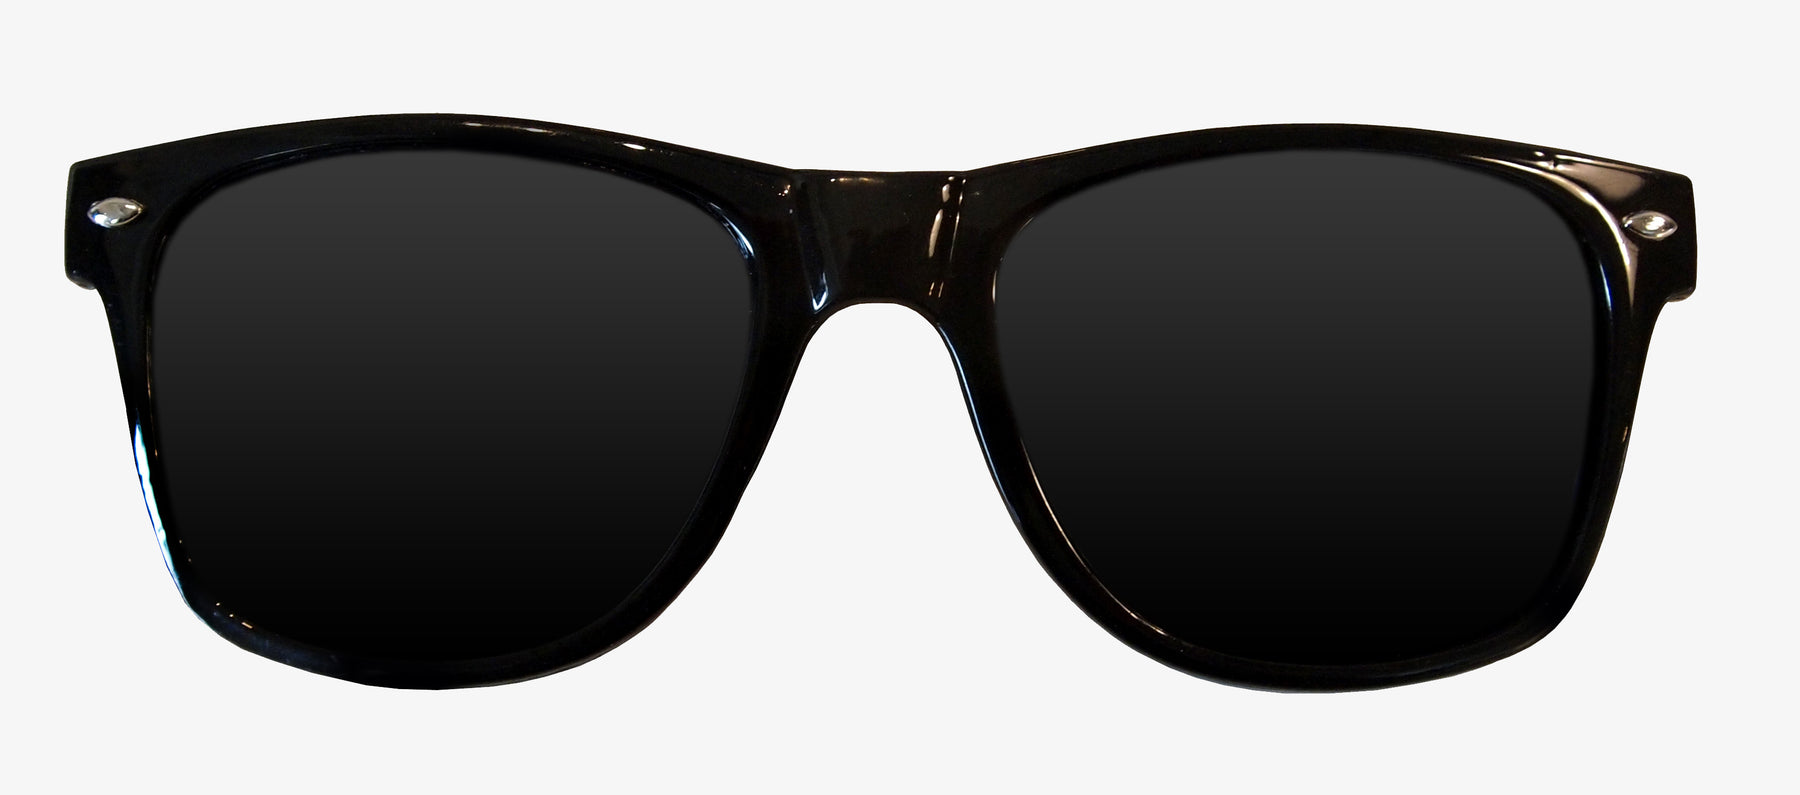 Make a Cool Statement with Promotional Sunglasses